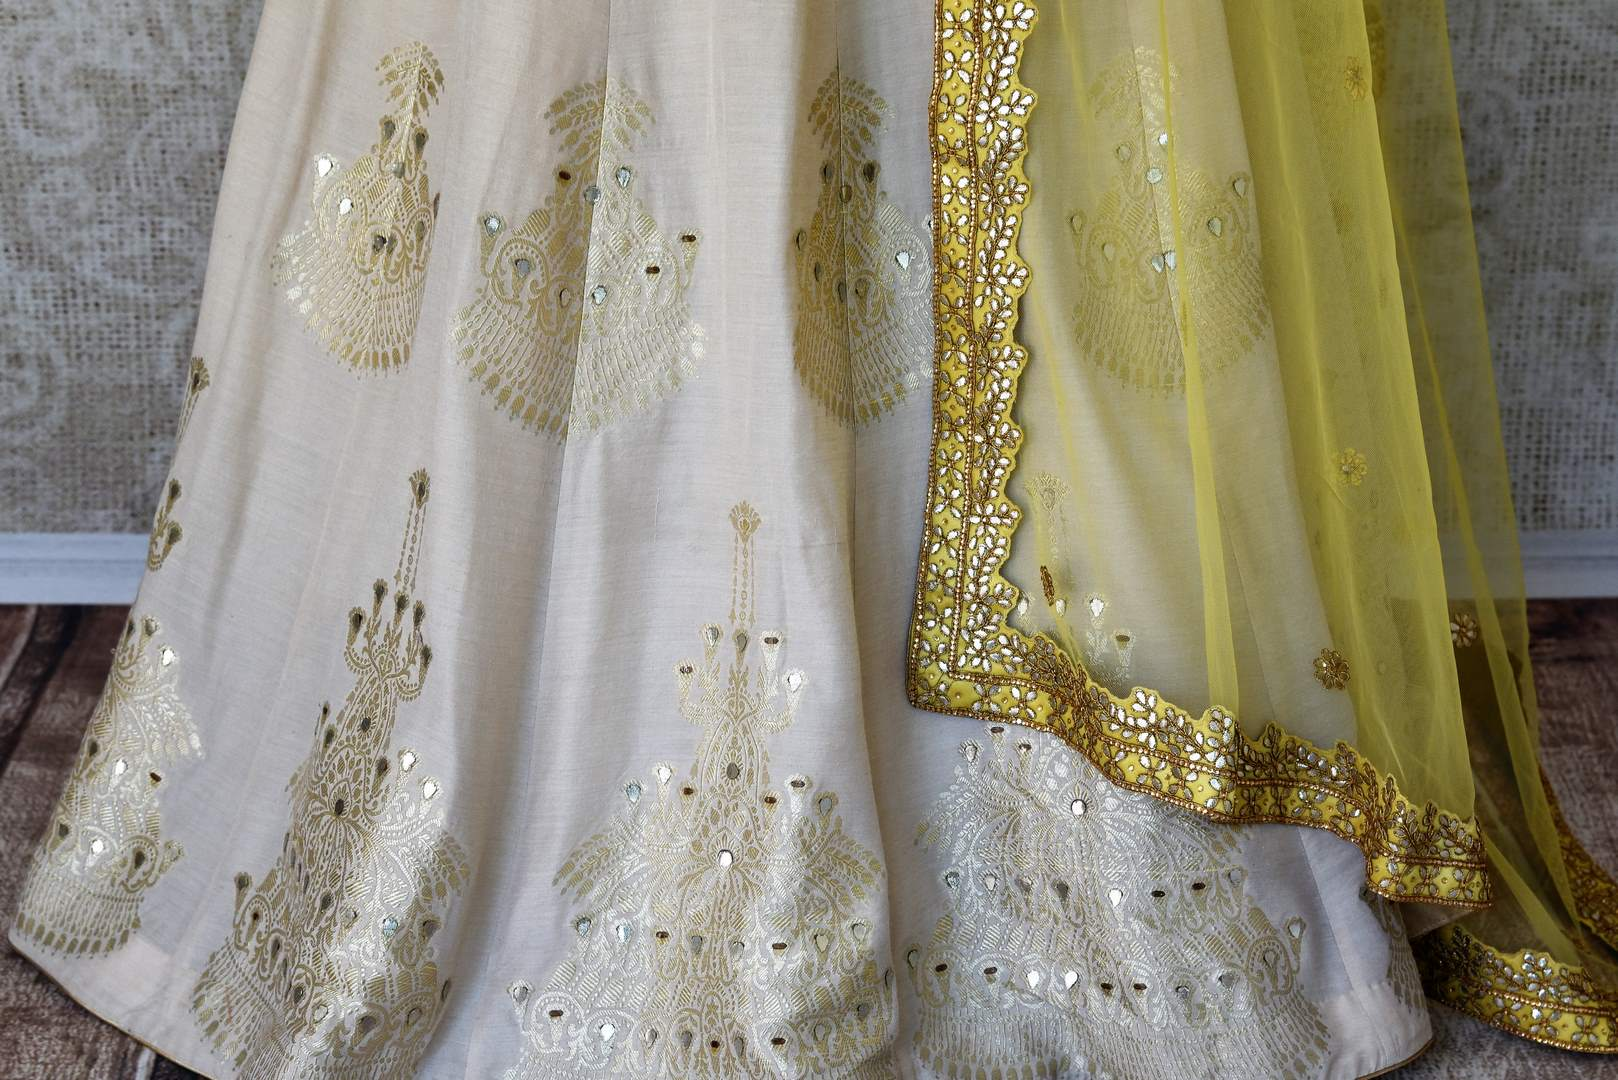 Buy white gota patti embroidery muga Banarasi suit with dupatta online in USA. Adorn your style with a range of exquisite Kanchipuram silk saris from Pure Elegance clothing store in USA. We have an exquisite range of Indian designer sarees, silk sarees, Banarasi saris and many other varieties also available at our online store.-skirt